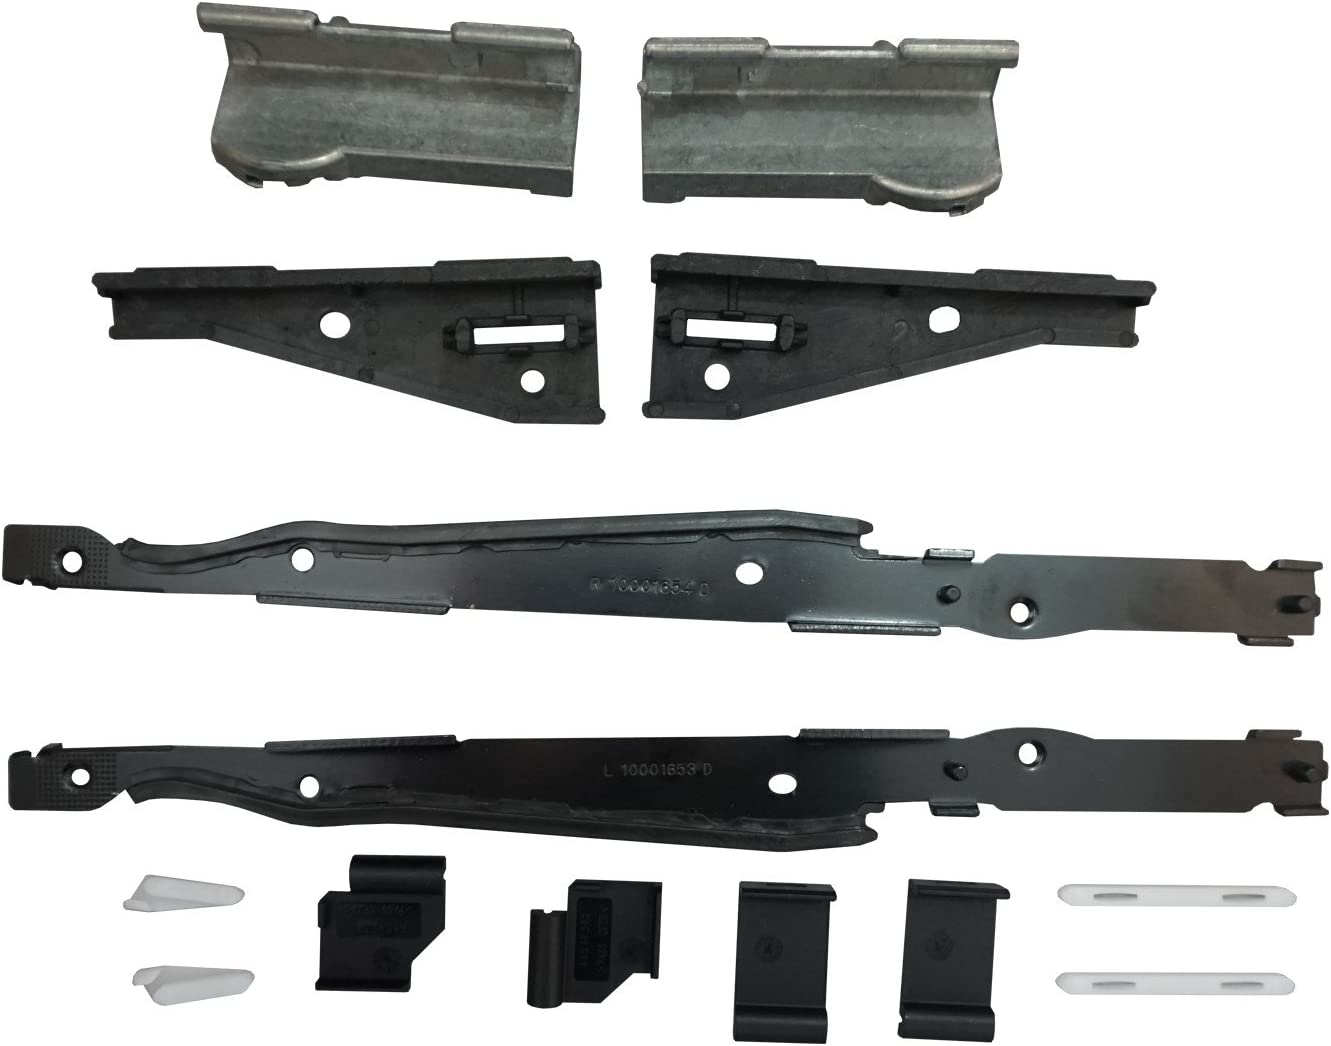 14 Pieces Sunroof Repair Kit for BMW X5 E53 and X3 E83 2000-2006